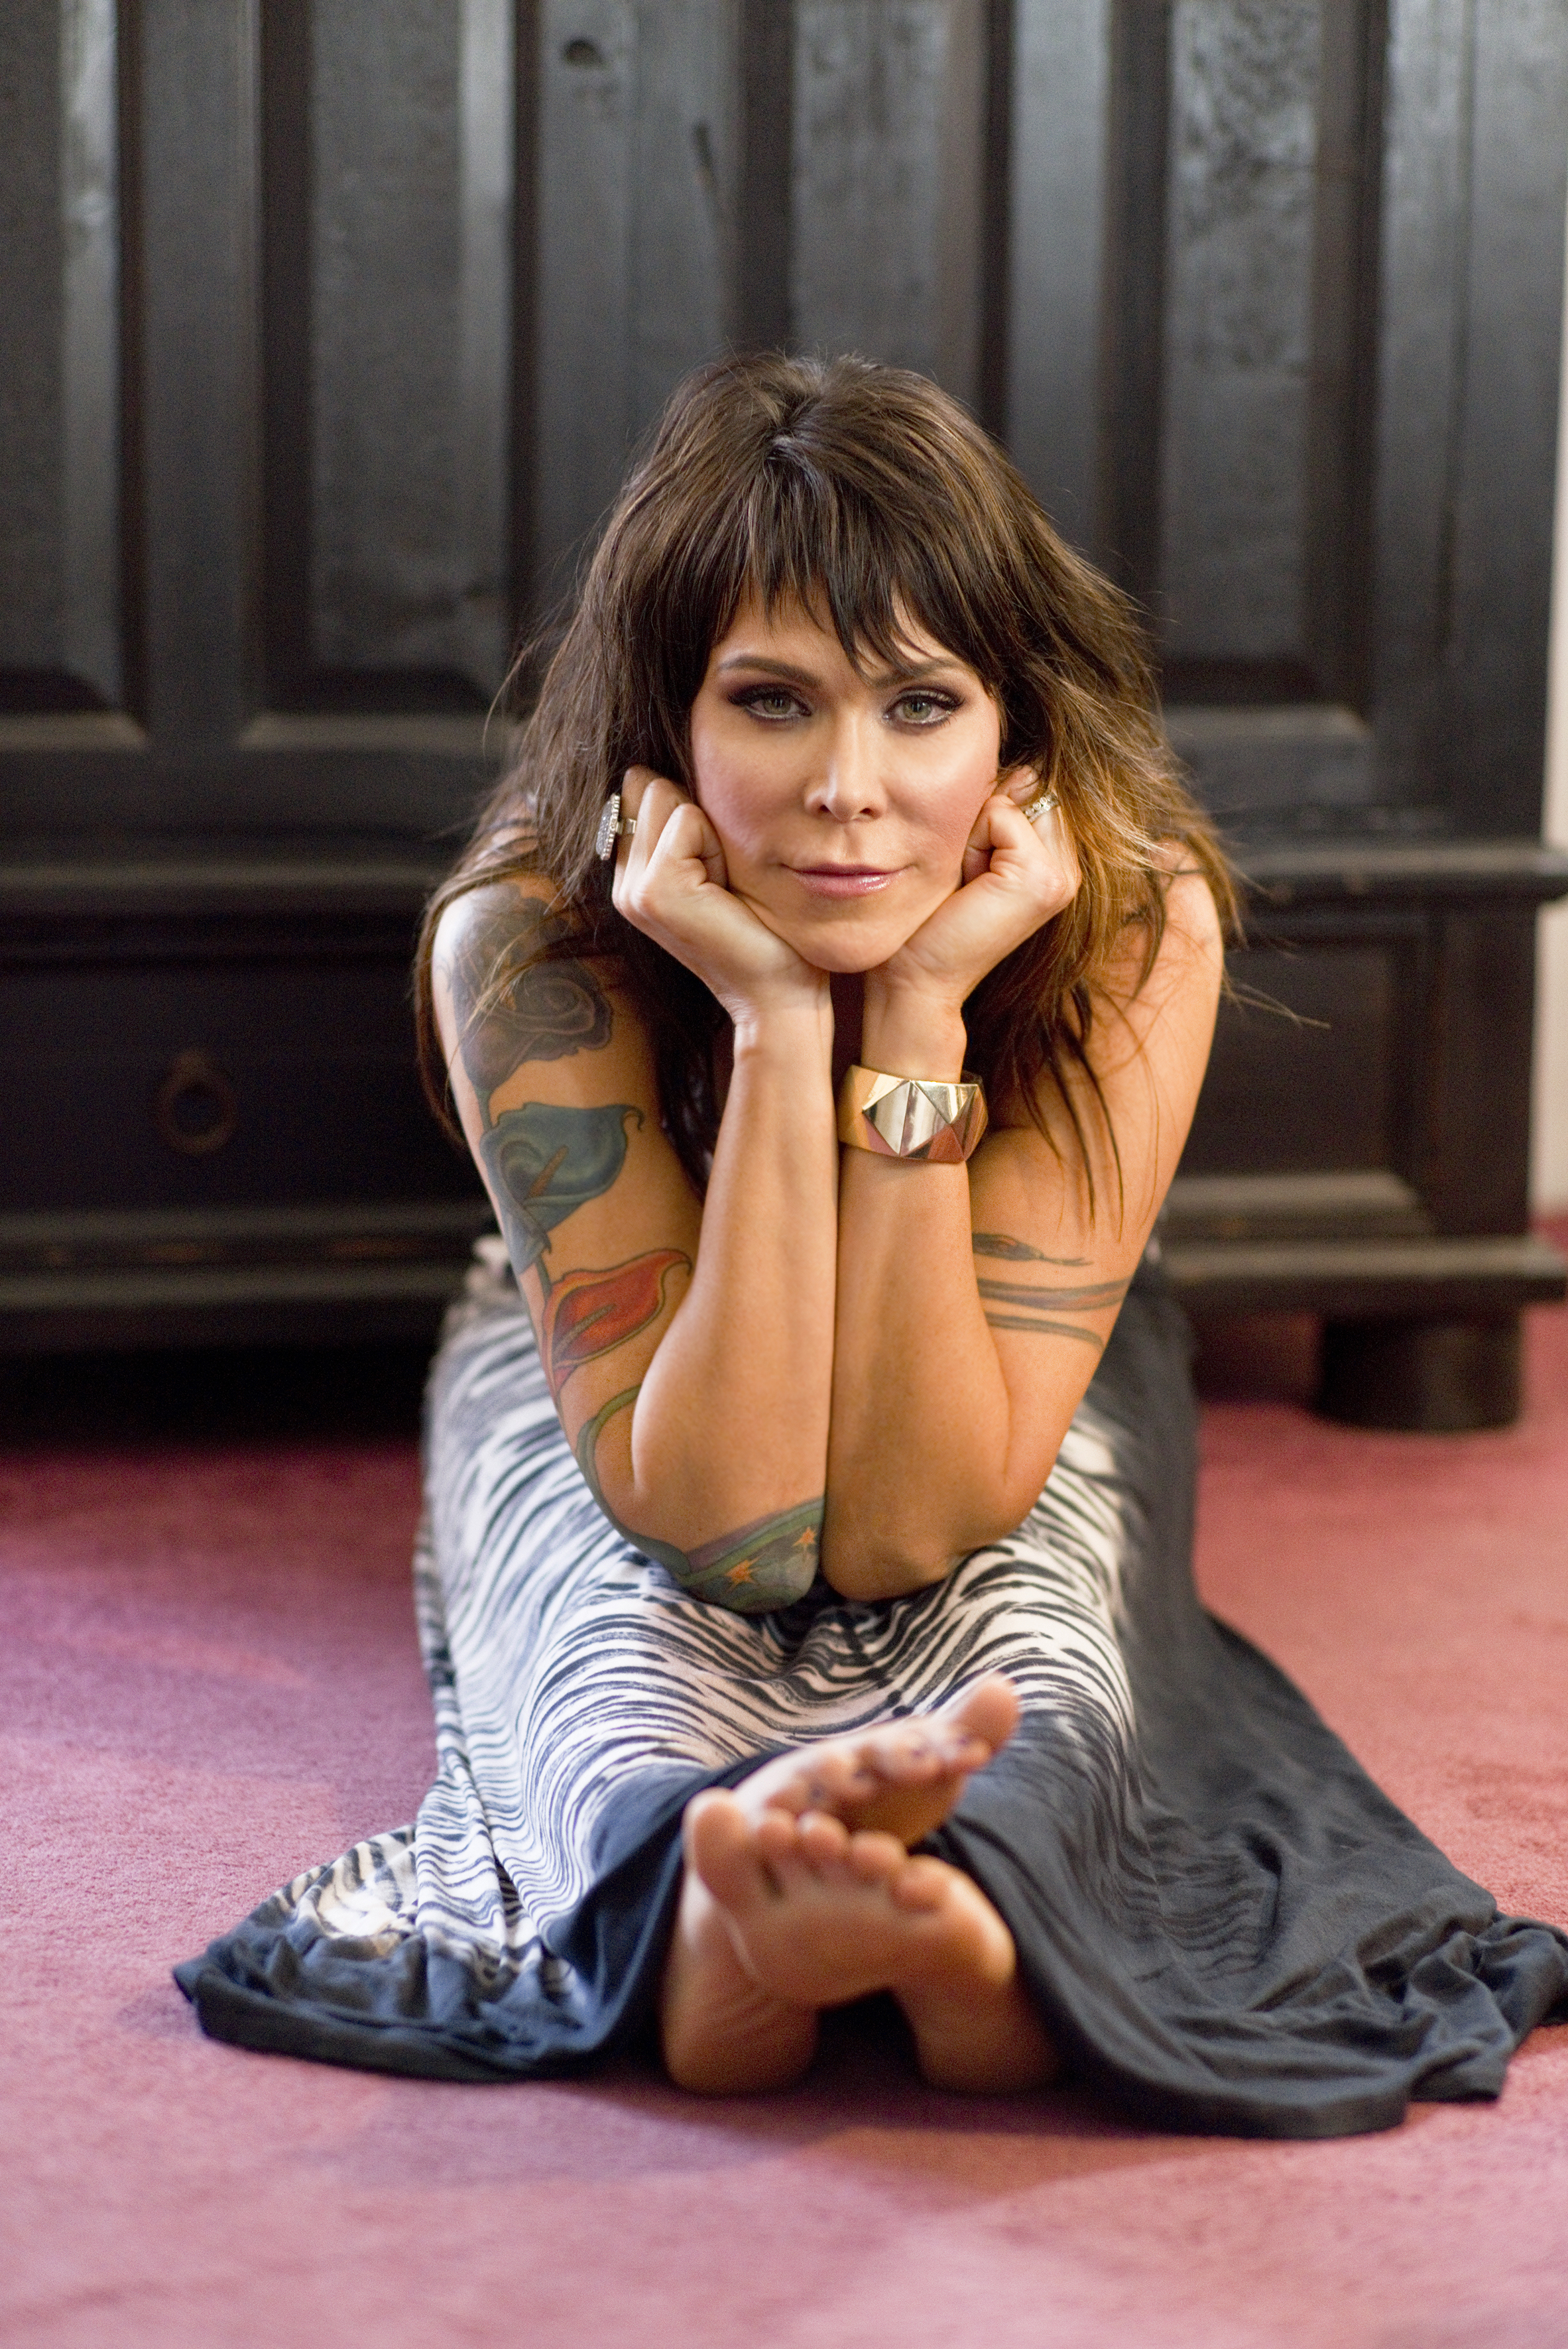 Beth Hart 054 by Greg Watermann